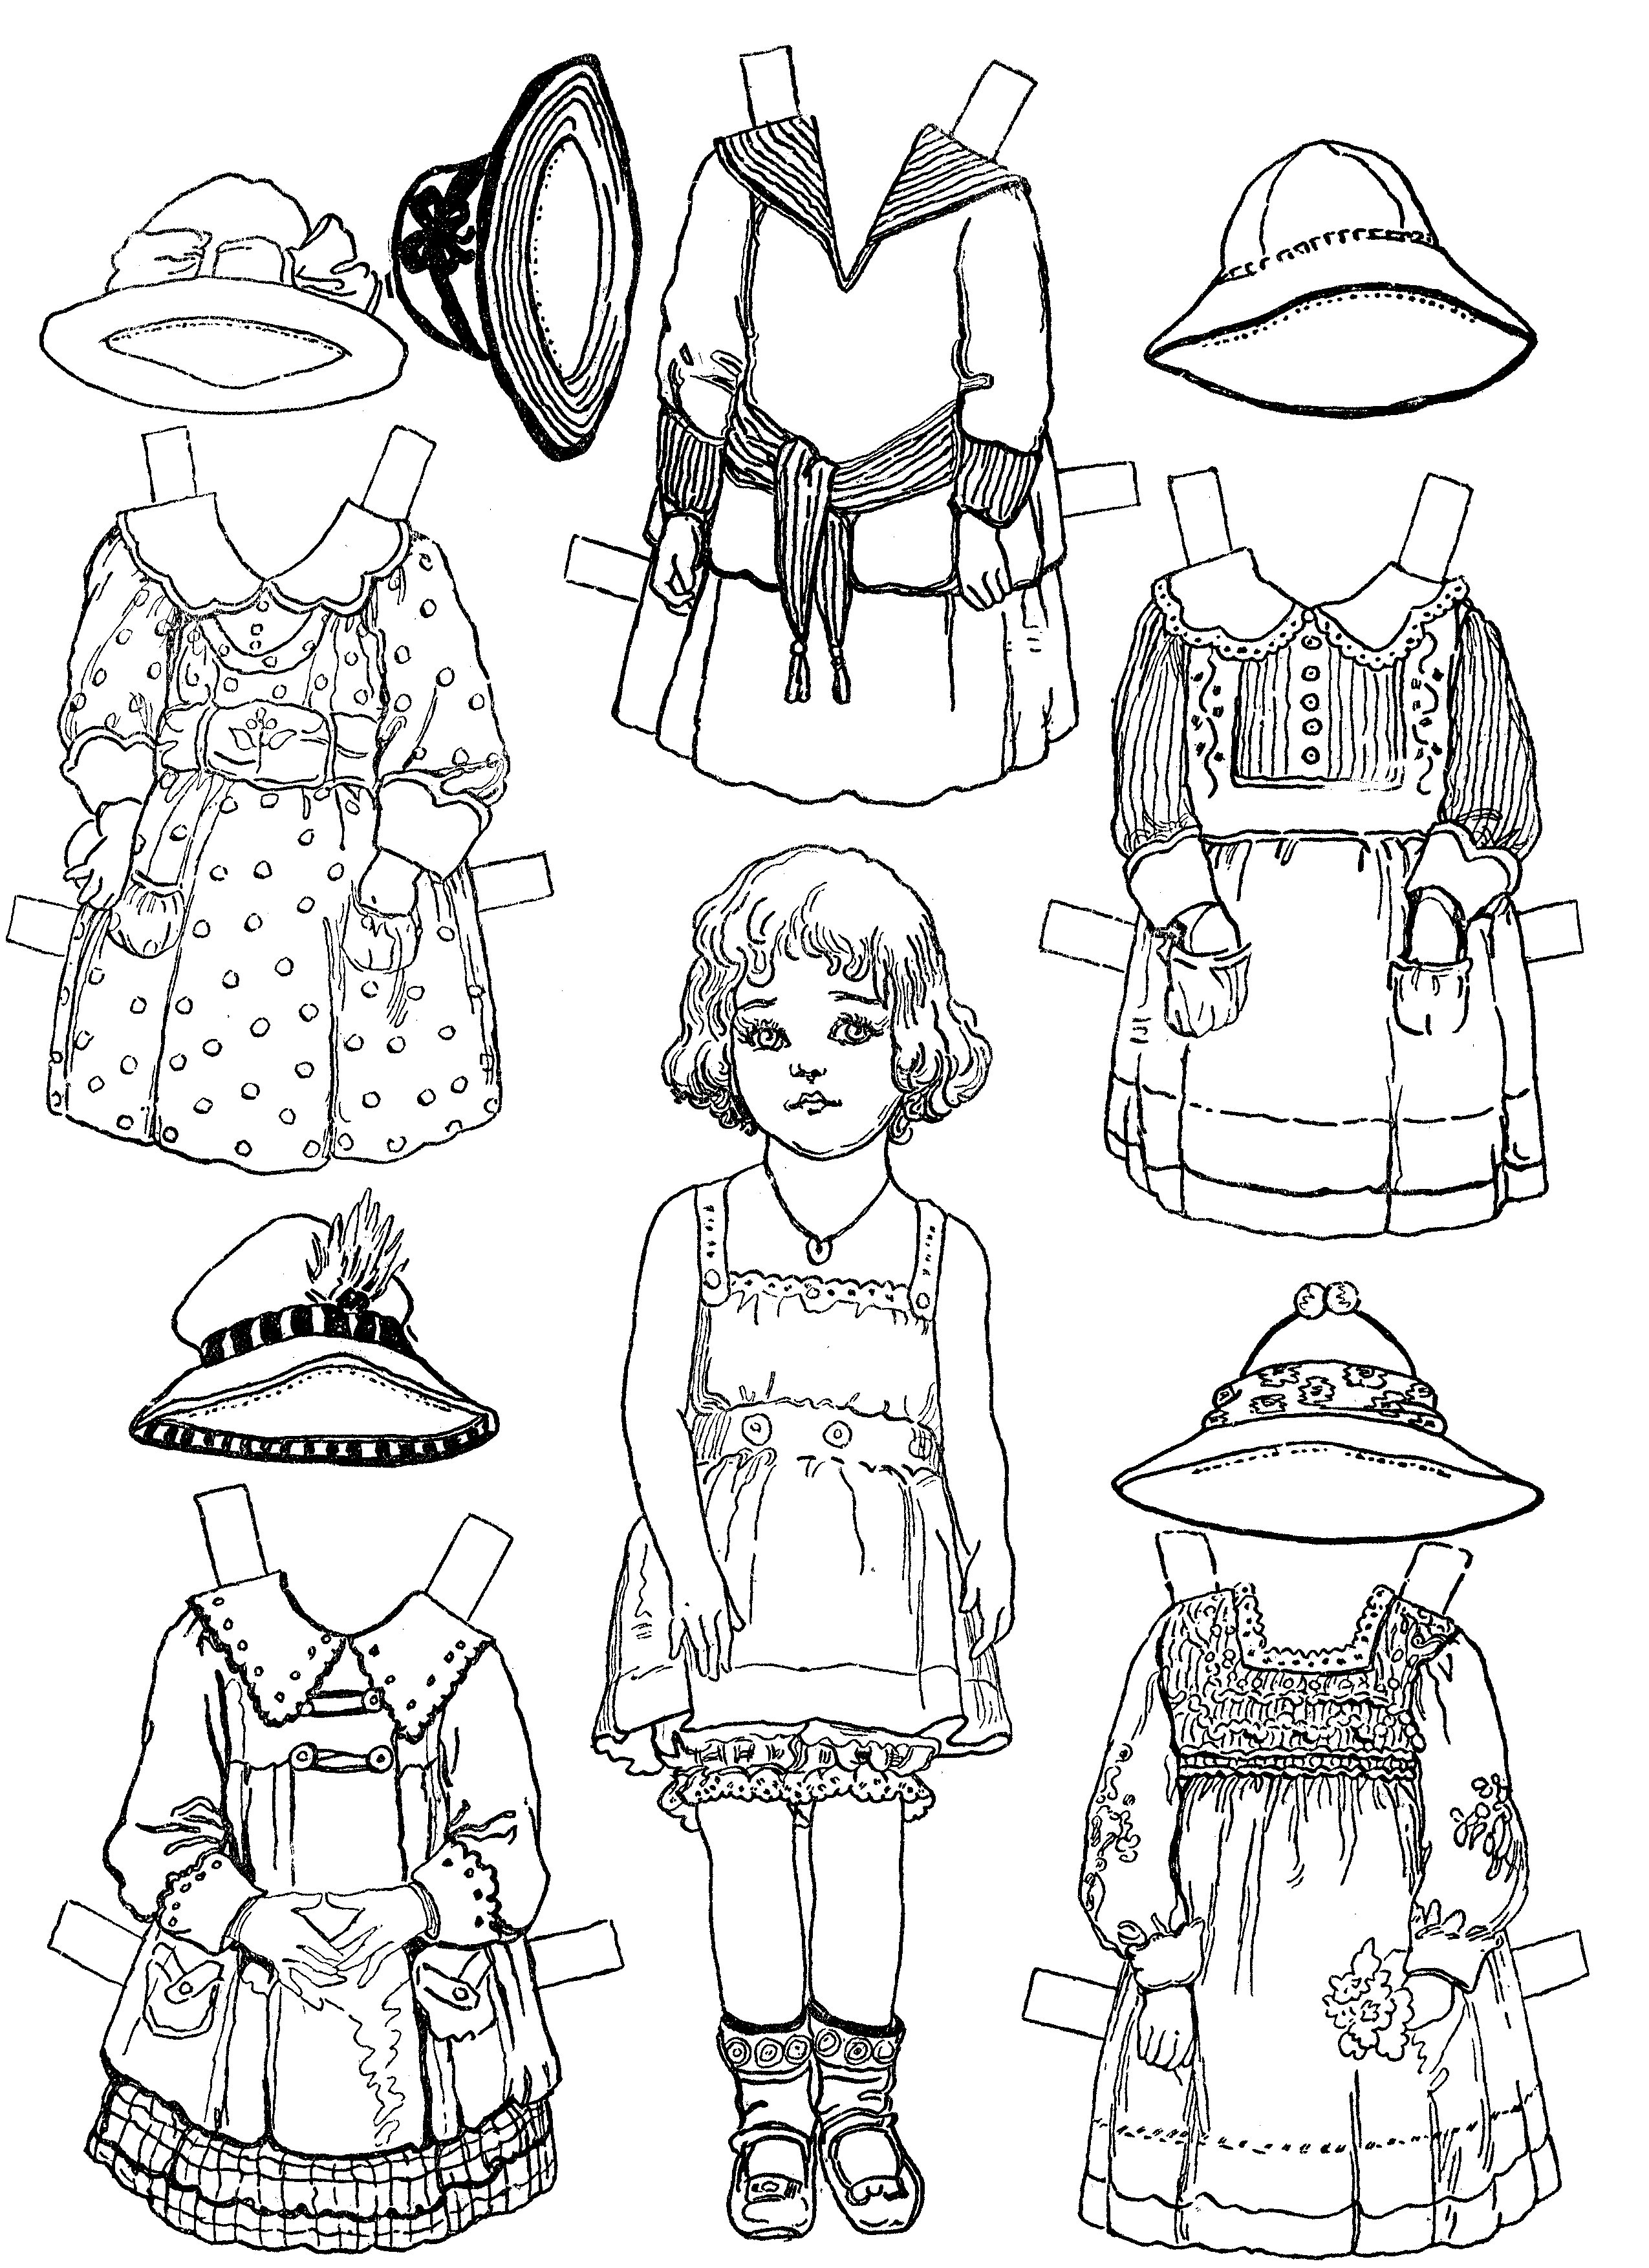 dolls colouring pages doll coloring pages getcoloringpagescom dolls colouring pages